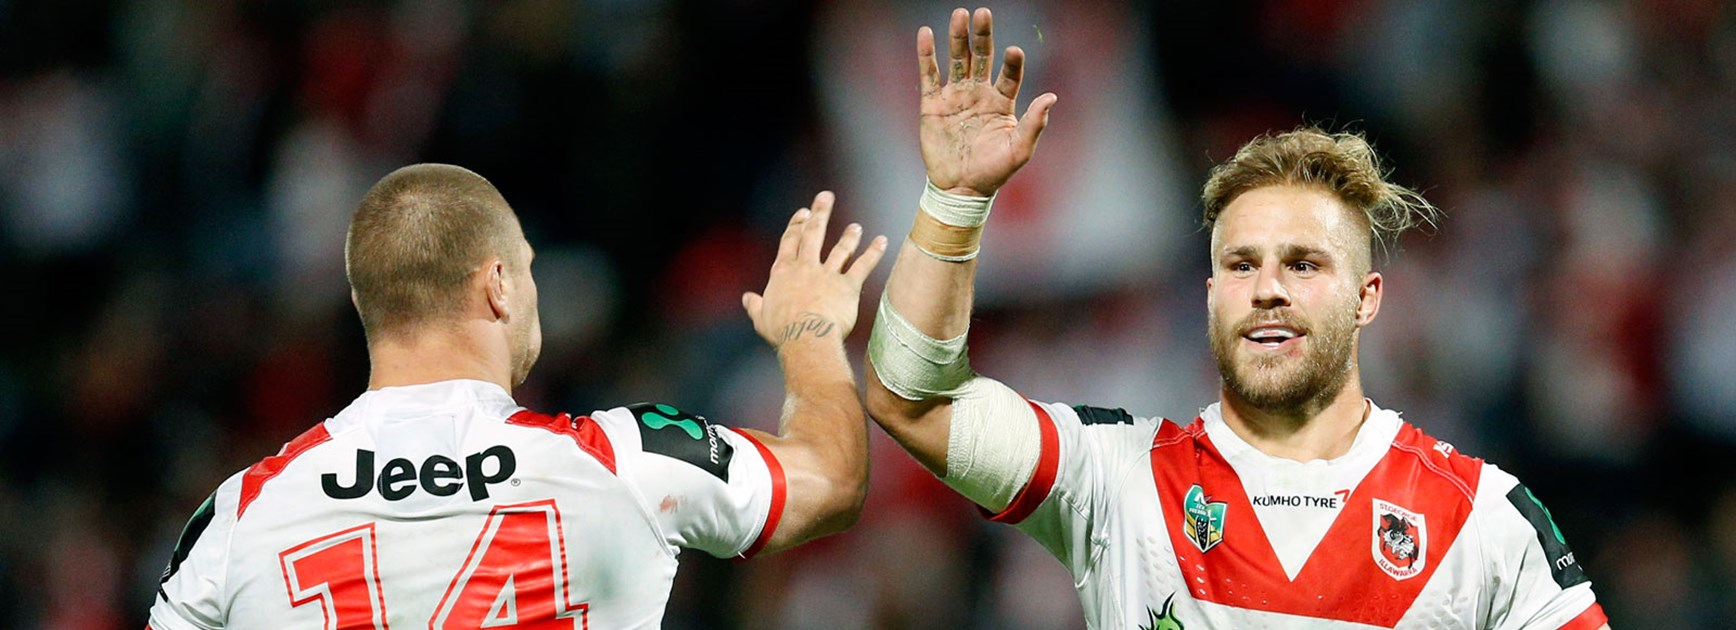 Jack de Belin and Tariq Sims following the Dragons' win over the Sharks.